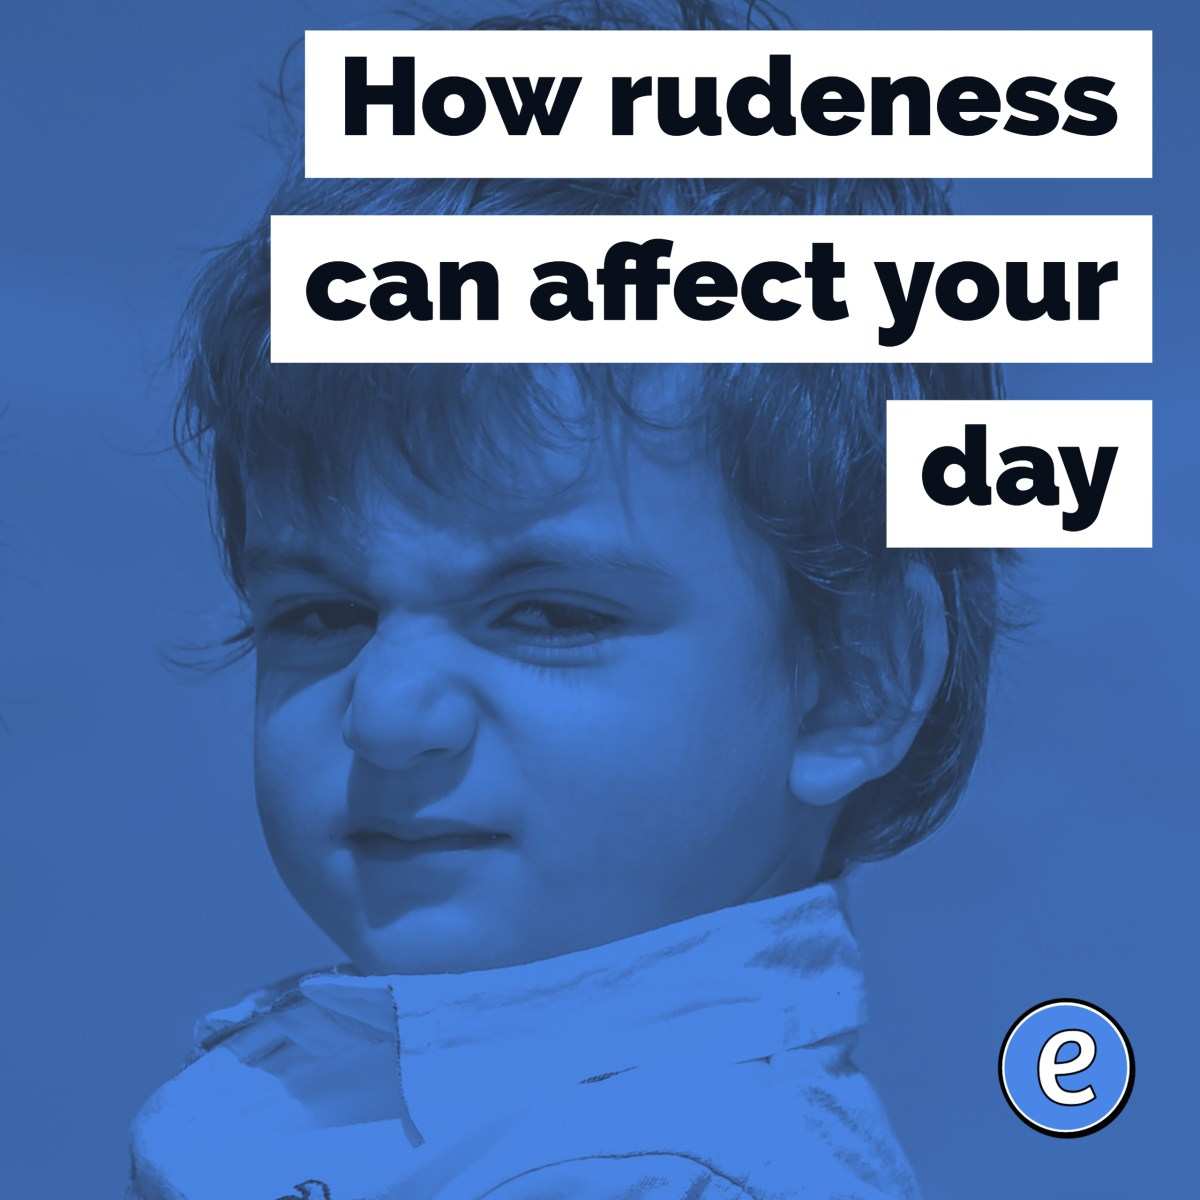 How rudeness can affect your day